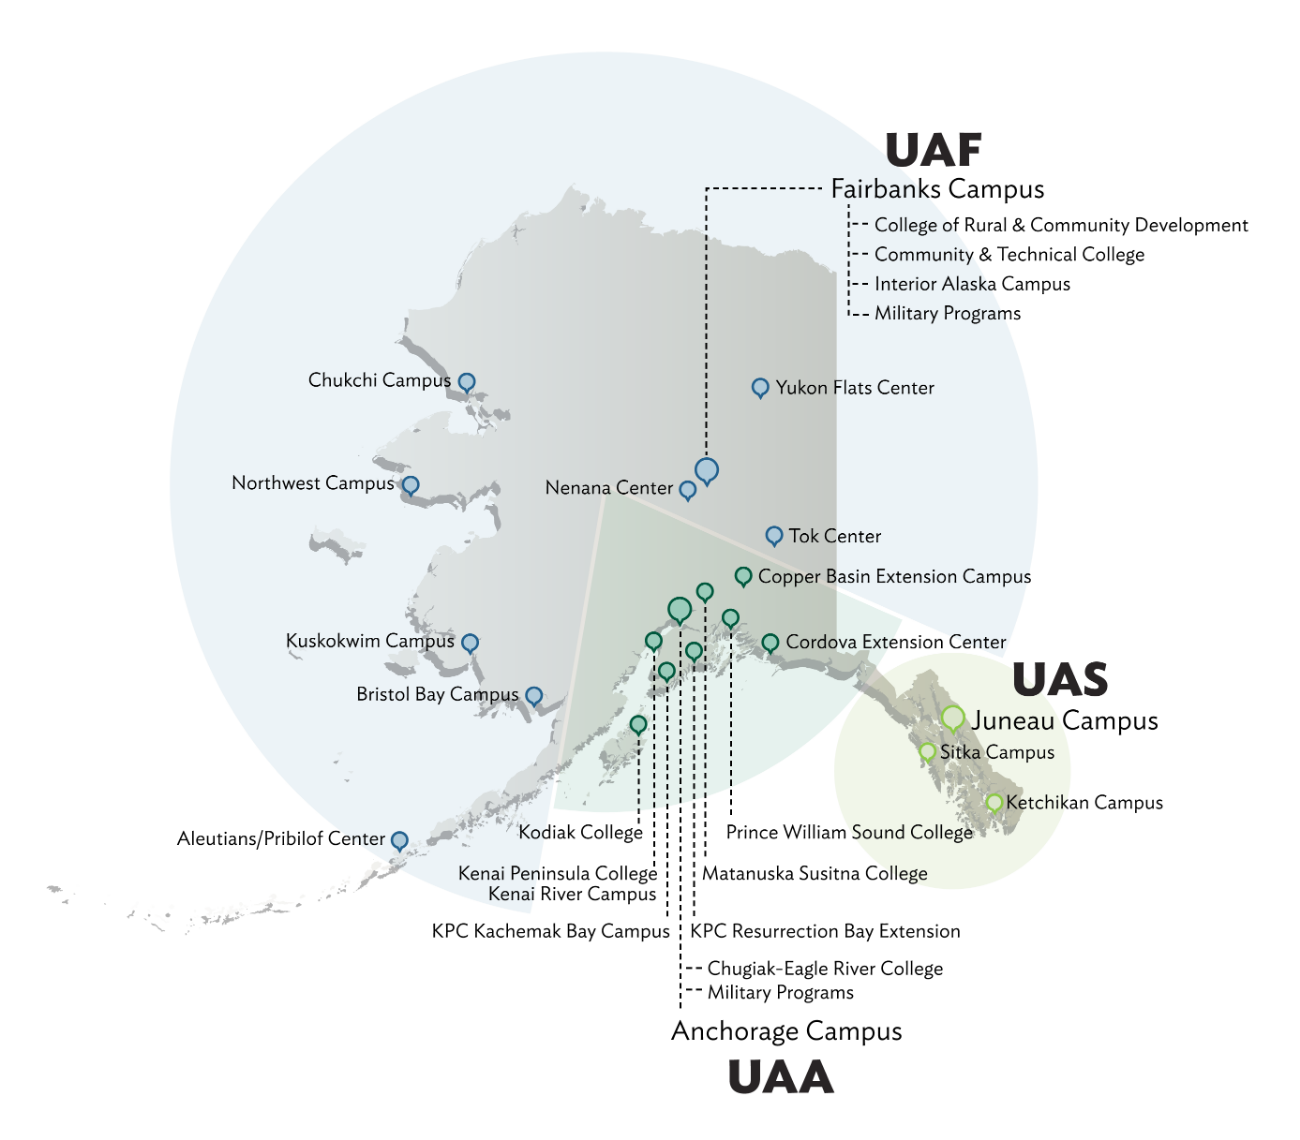 UA Campus map - State of Alaska